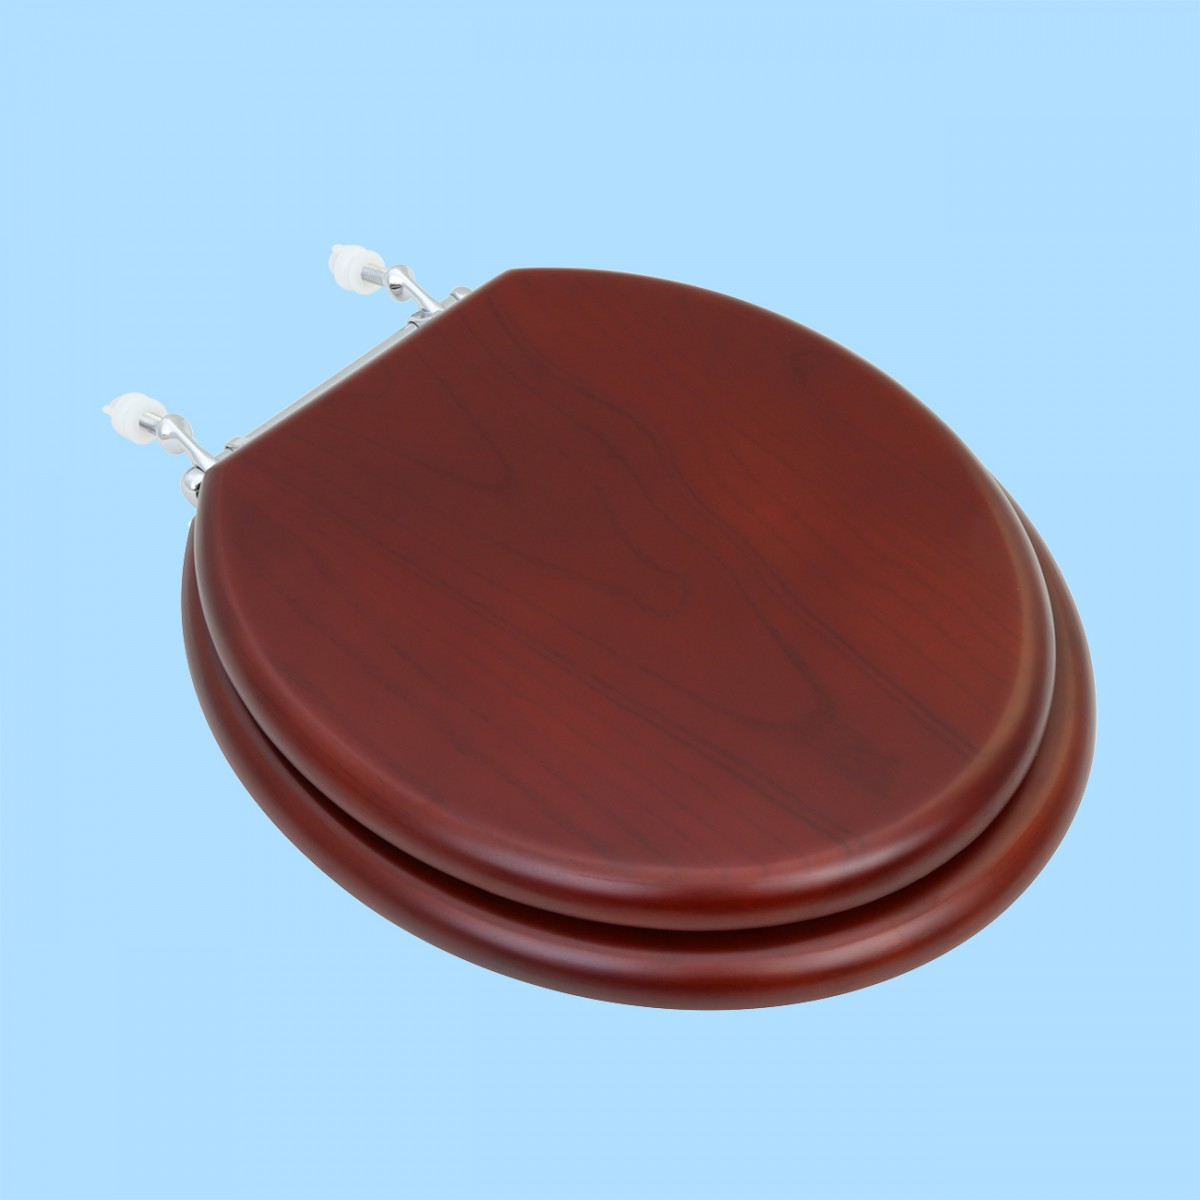 Awesome Toilet Seat Round Hardwood Cherry Finish Chrome Hinge Andrewgaddart Wooden Chair Designs For Living Room Andrewgaddartcom